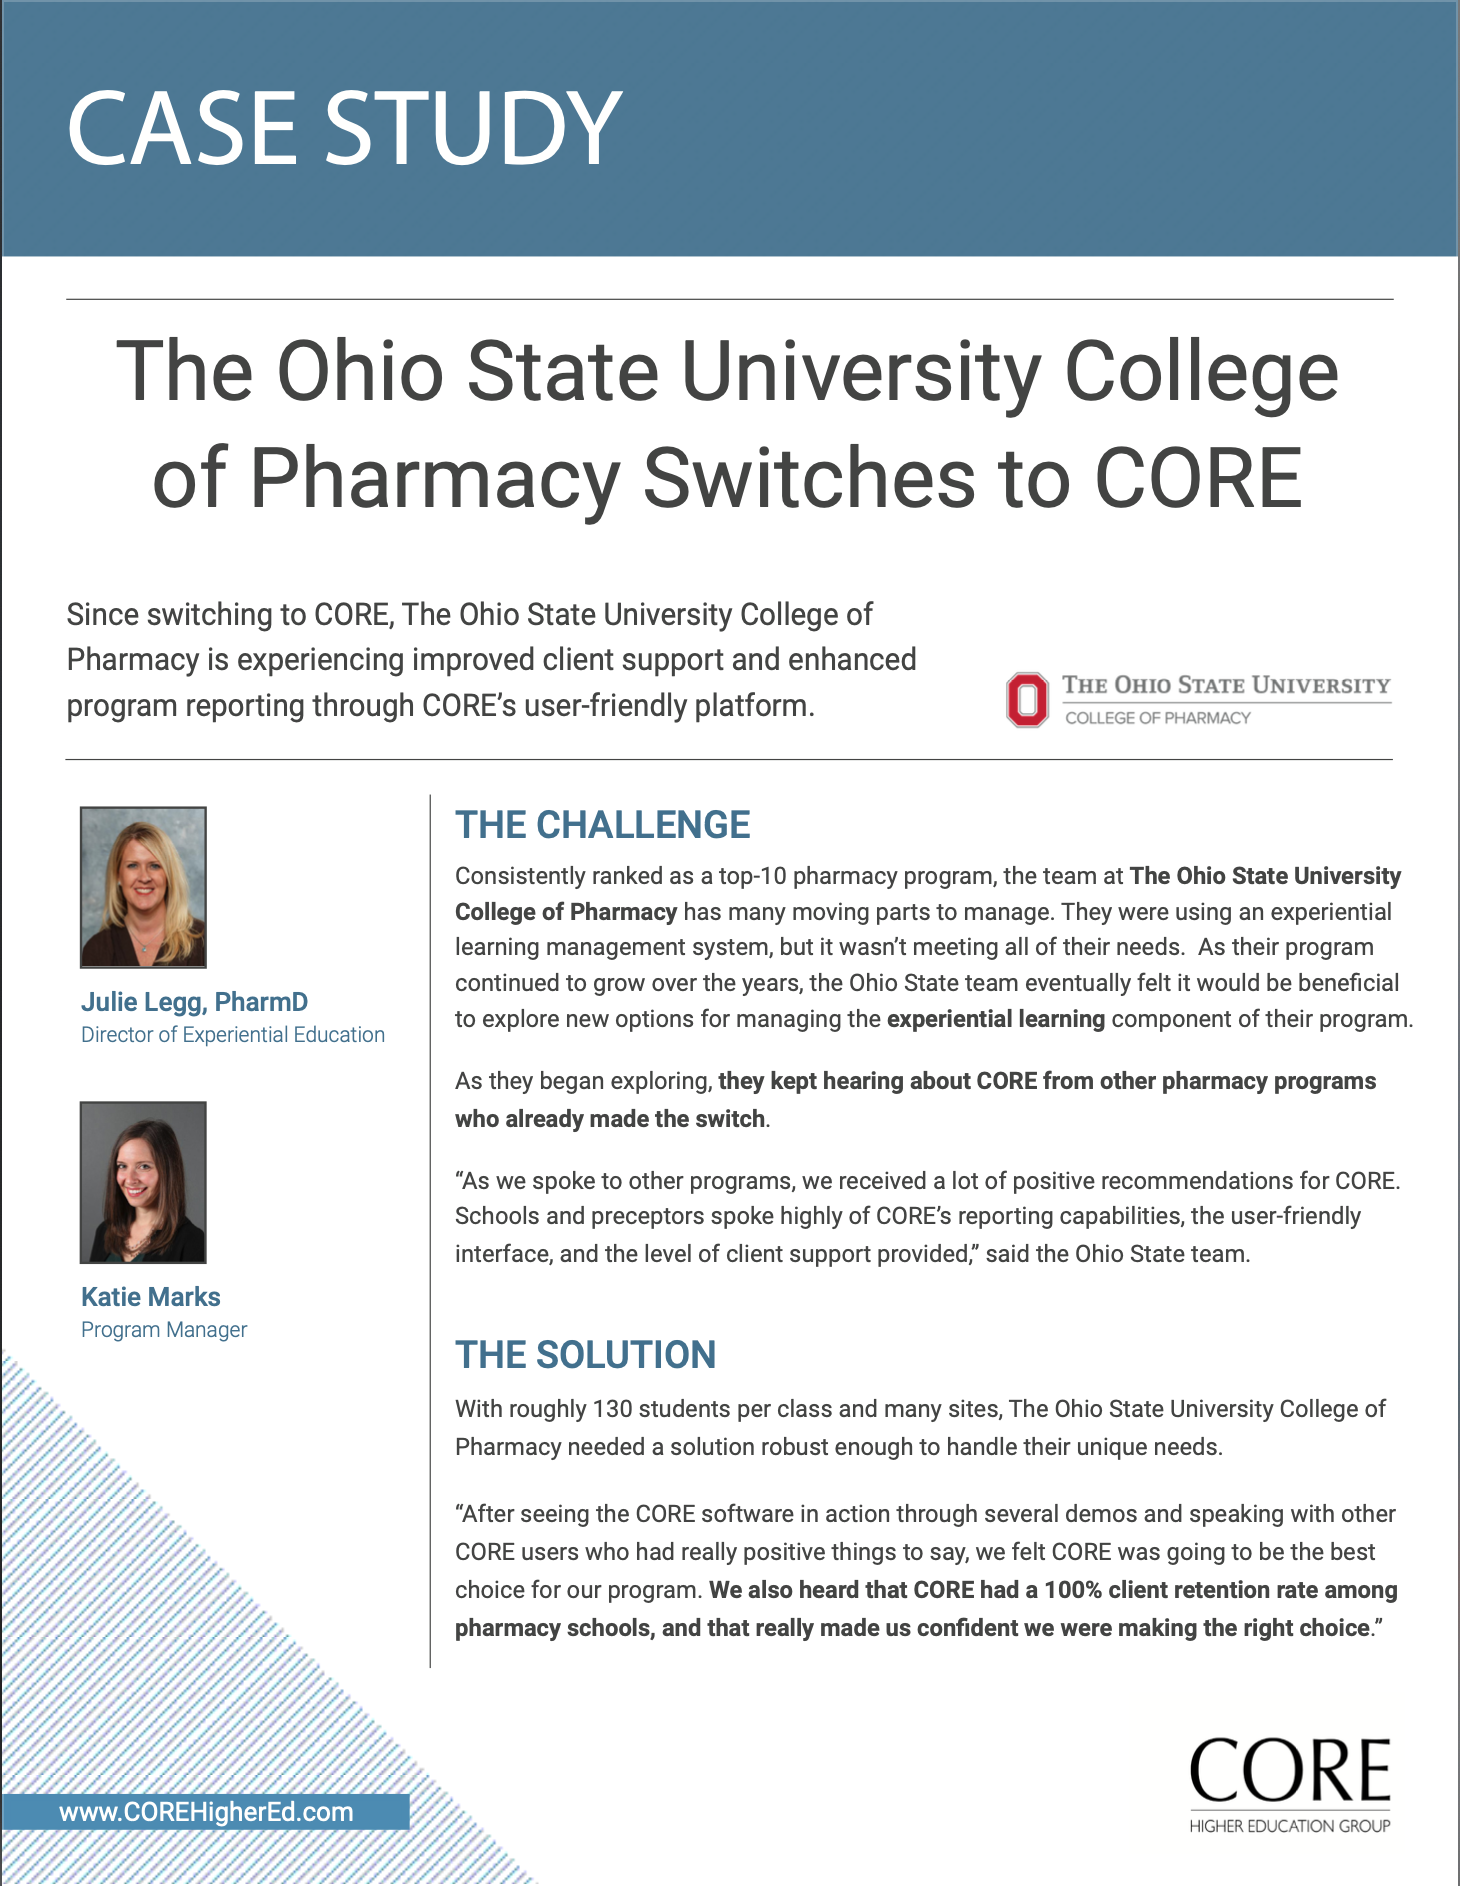 Case Study - The Ohio State College of Pharmacy